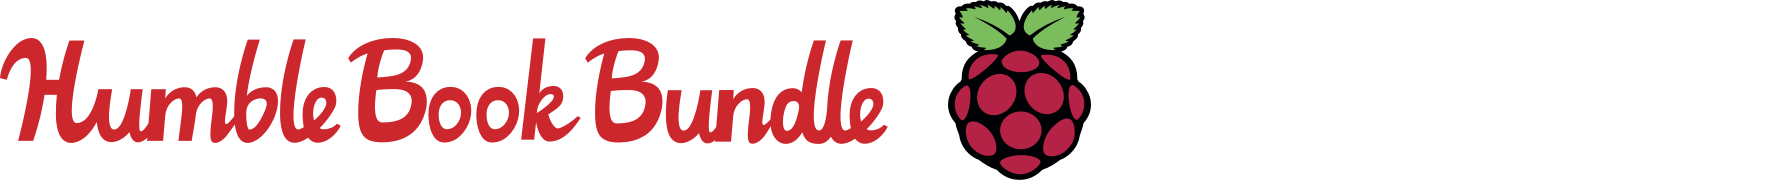 Humble Book Bundle: Raspberry Pi by Raspberry Pi Press